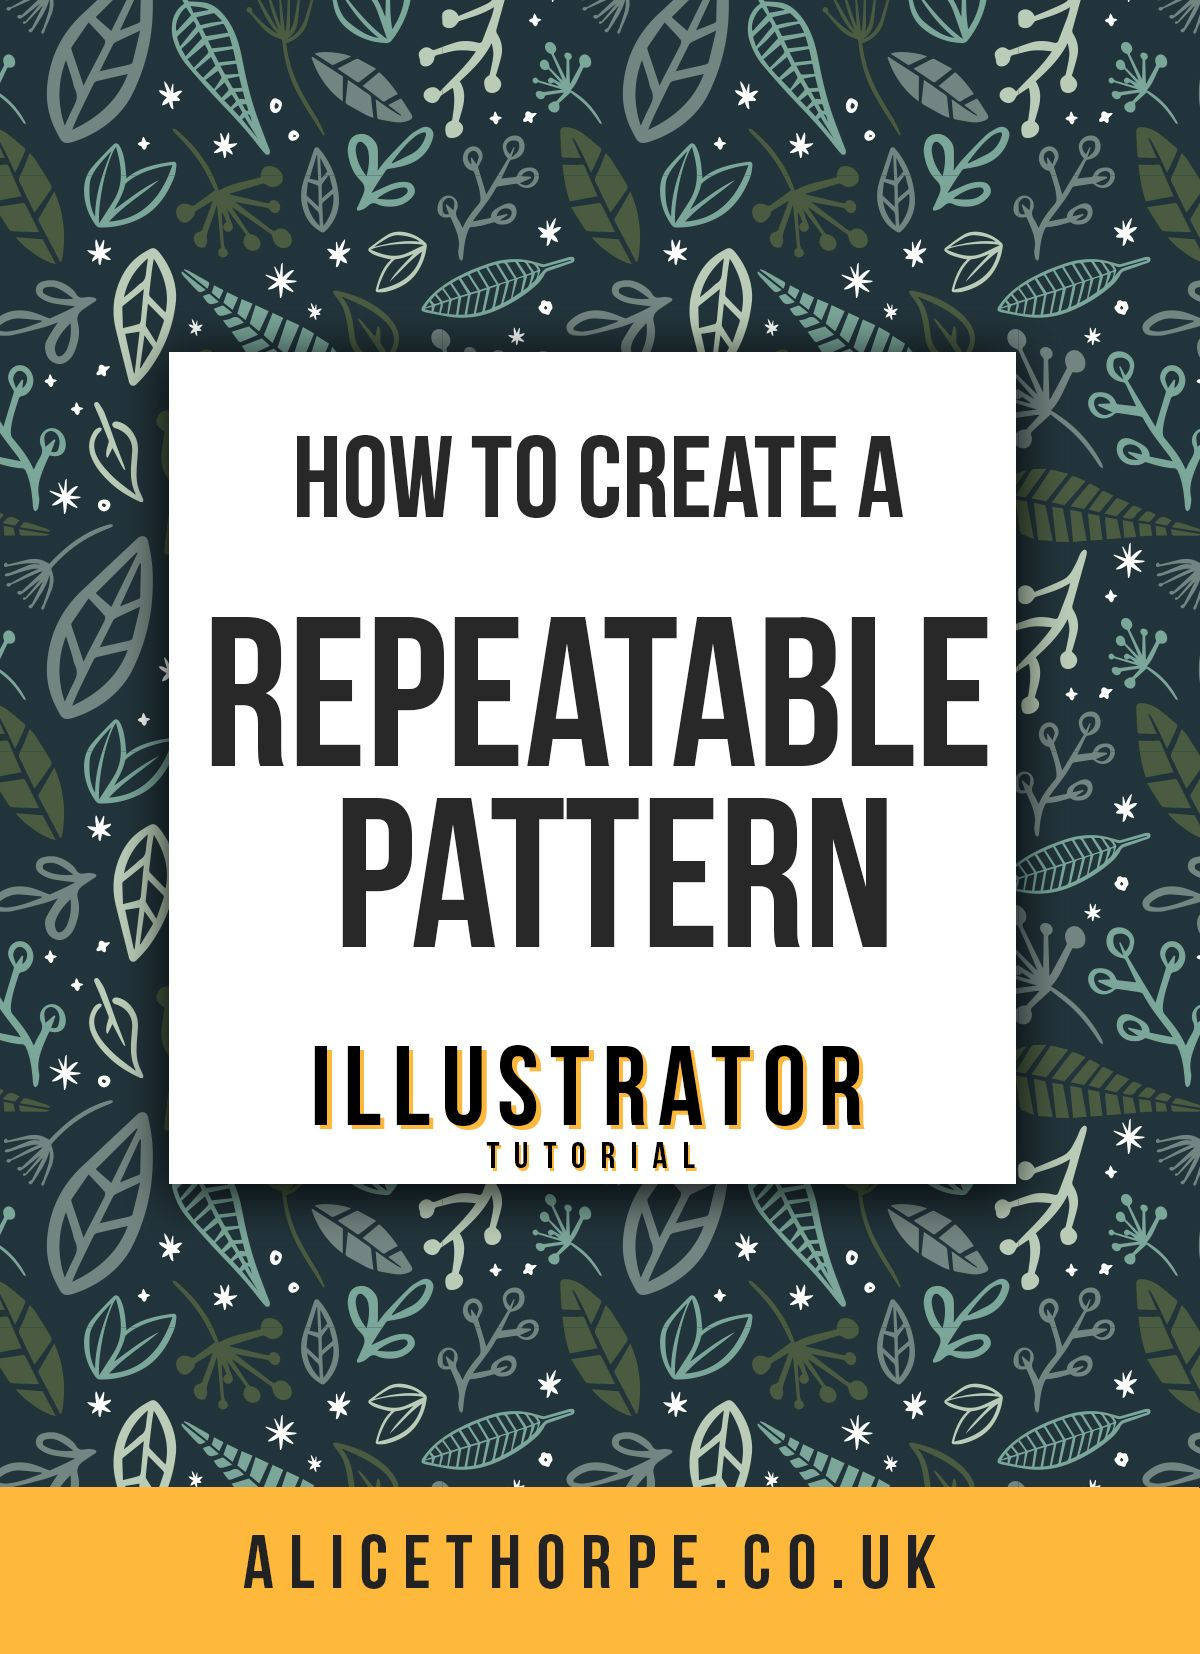 Learn how to create a seamless repeatable pattern using Adobe Illustrator. An easy to follow tutorial for beginners.